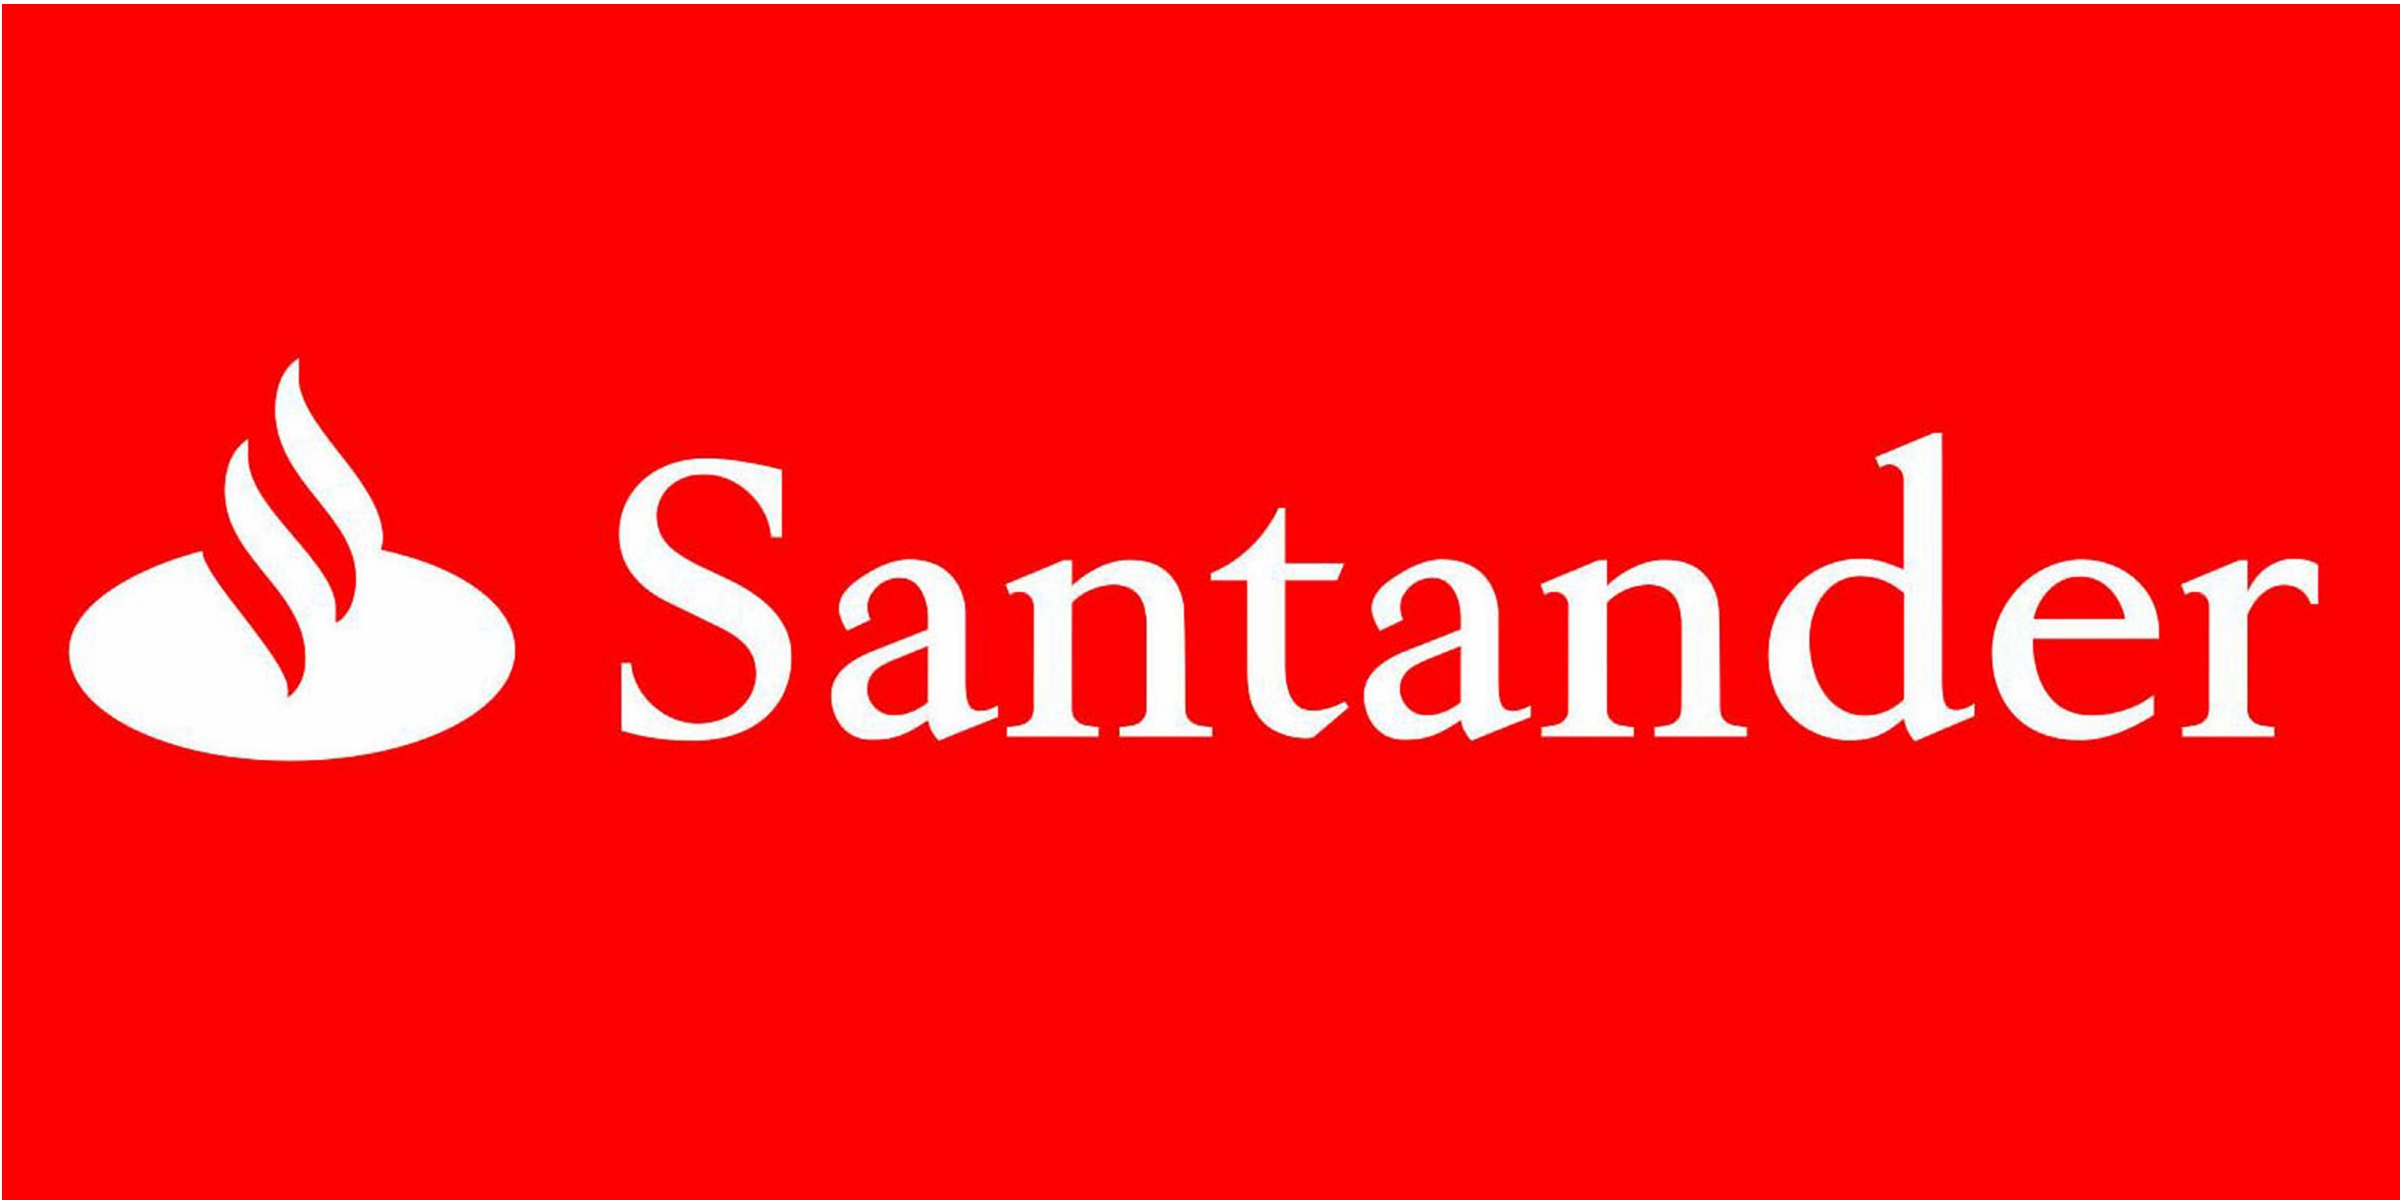 Santander Credit Card >> Santander Bank Credit Card Payment - Login - Address - Customer Service